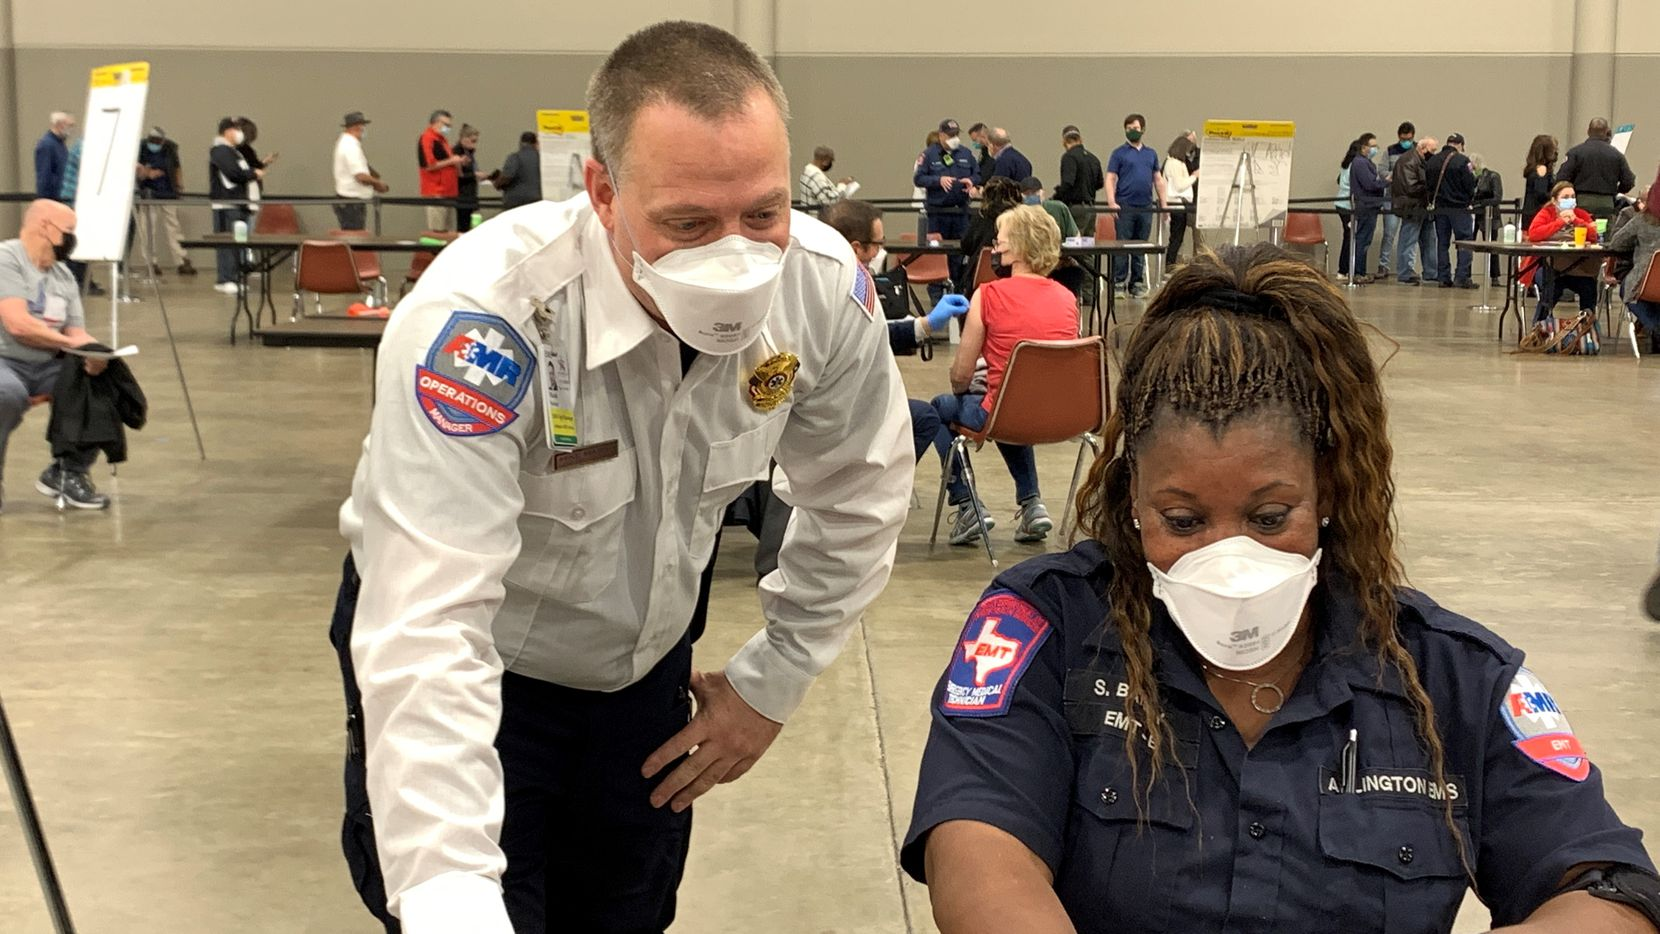 Michael Marsh, operations manger at American Medical Response Arlington, chats with AMR EMT Sylvia Bailey at the Arlington COVID-19 vaccination site. Marsh has been supporting the vaccination operation by helping register and vaccinate people.